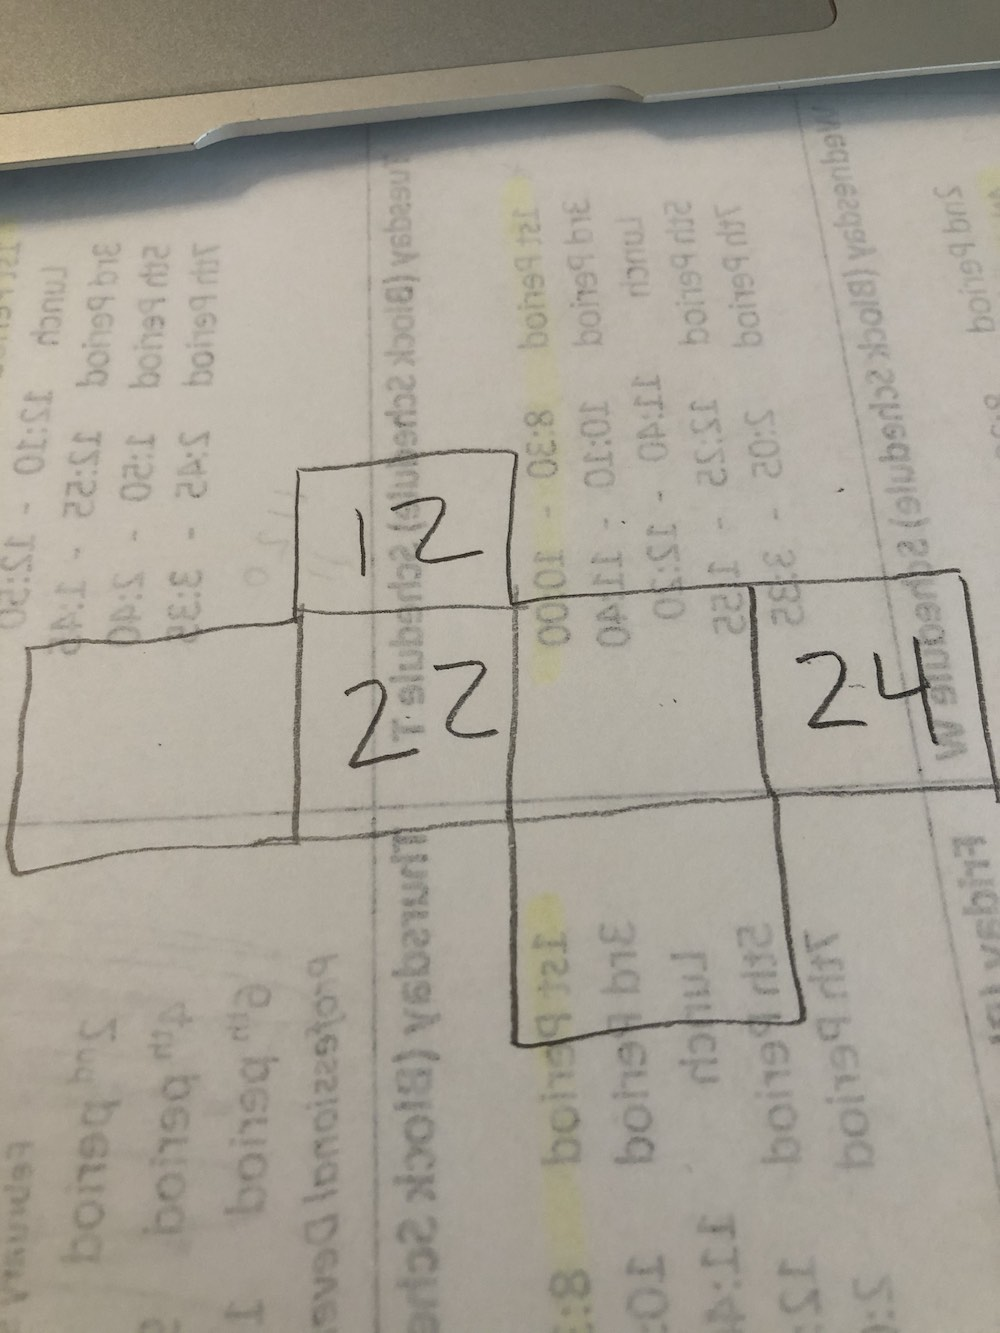 A pencil drawing of a partial 3x4 grid with the numbers 12, 22 and 24 filled in and three blank squares.